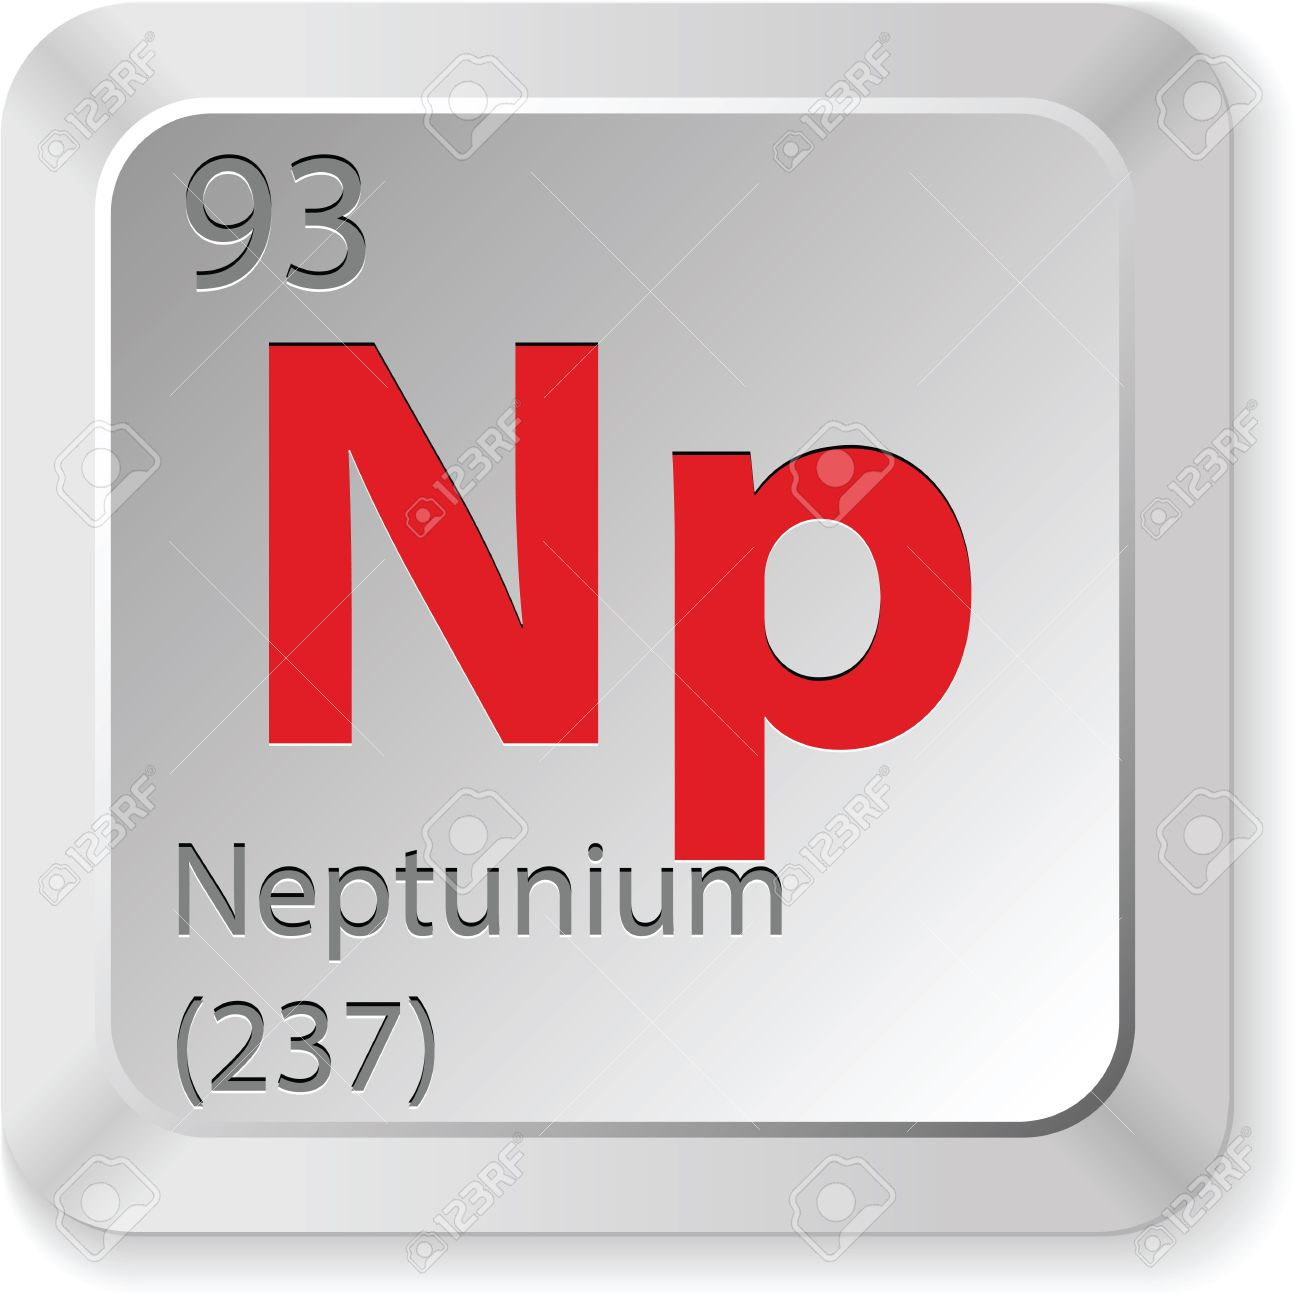 Neptunium Element Royalty Free Cliparts, Vectors, And Stock.